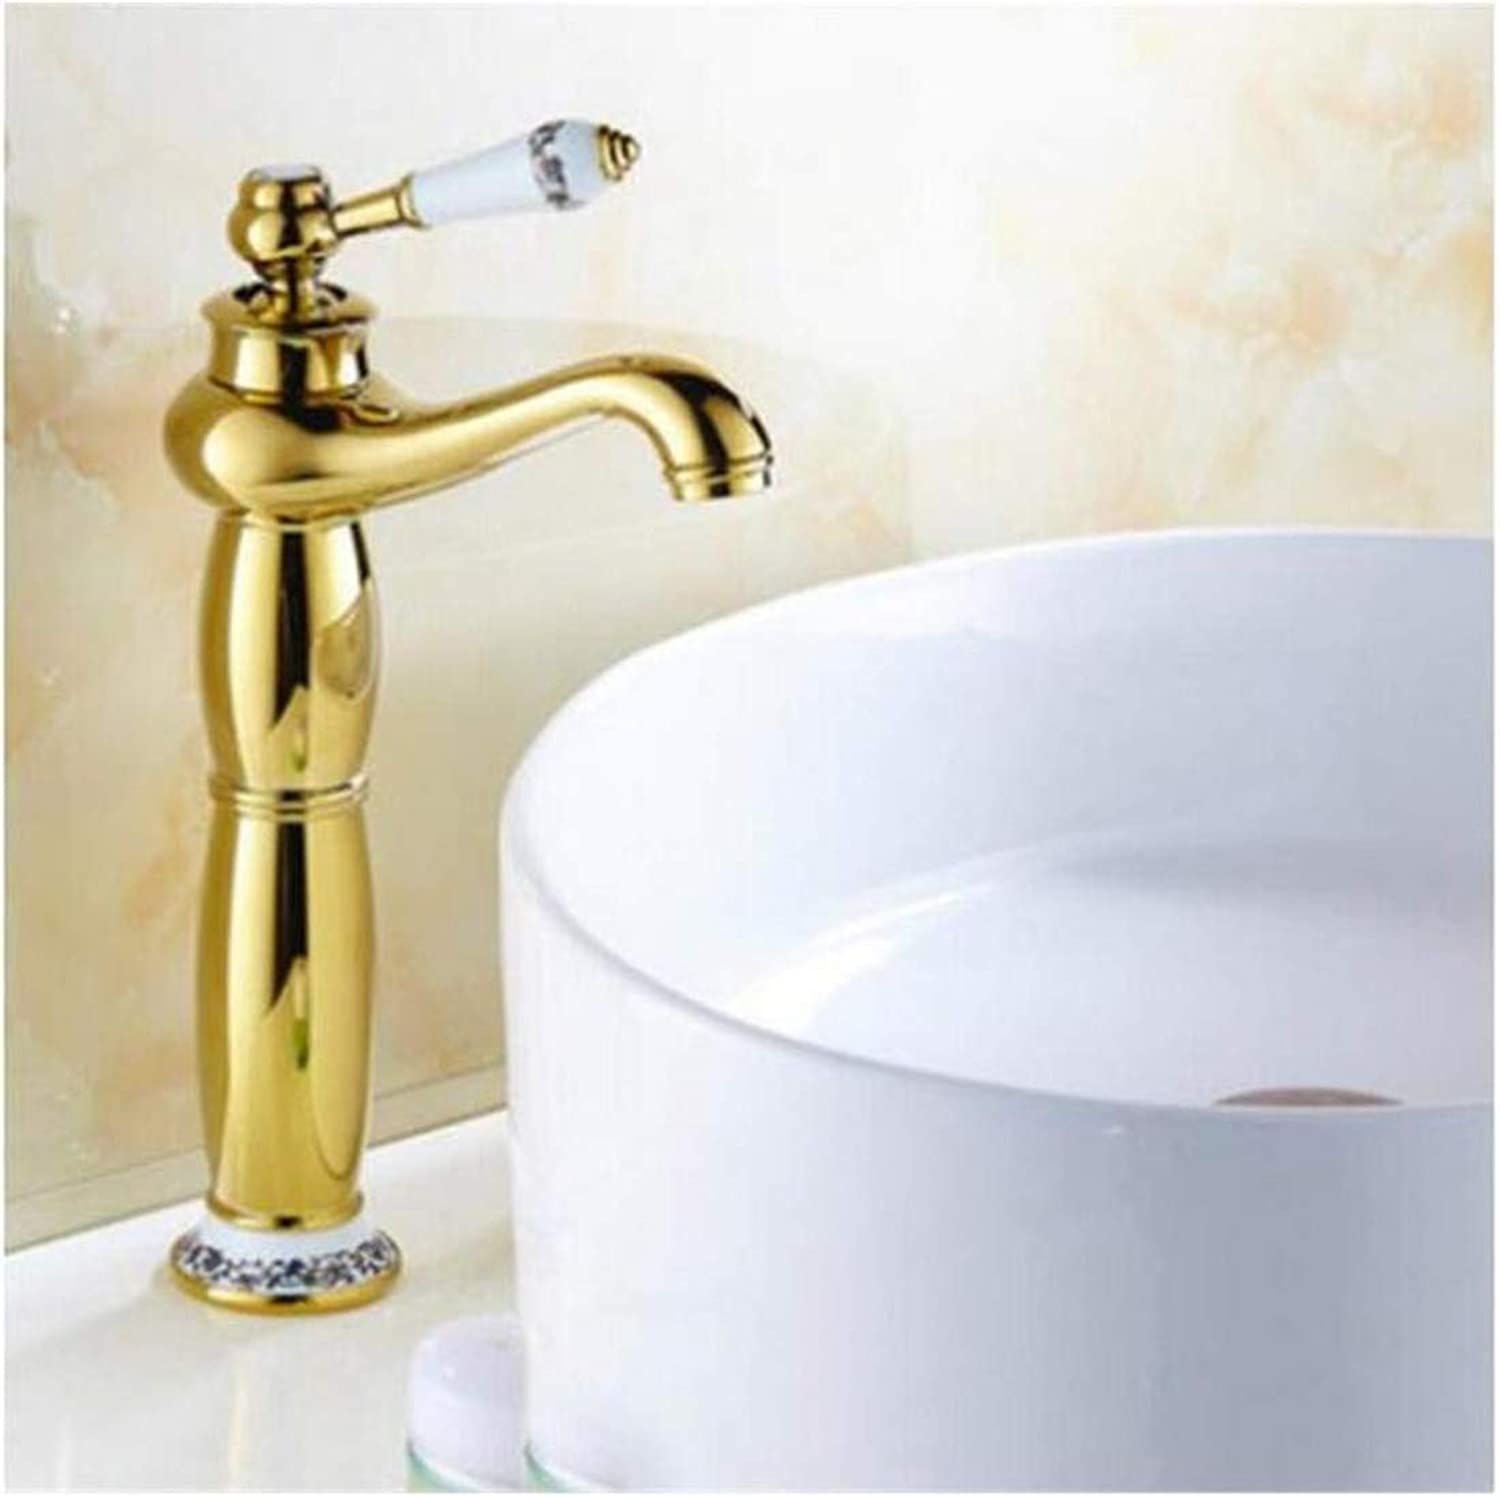 Kitchen Bath Basin Sink Bathroom Taps Washbasin Mixer Bathroom Basin Mixer Brass Faucet Ctzl2495